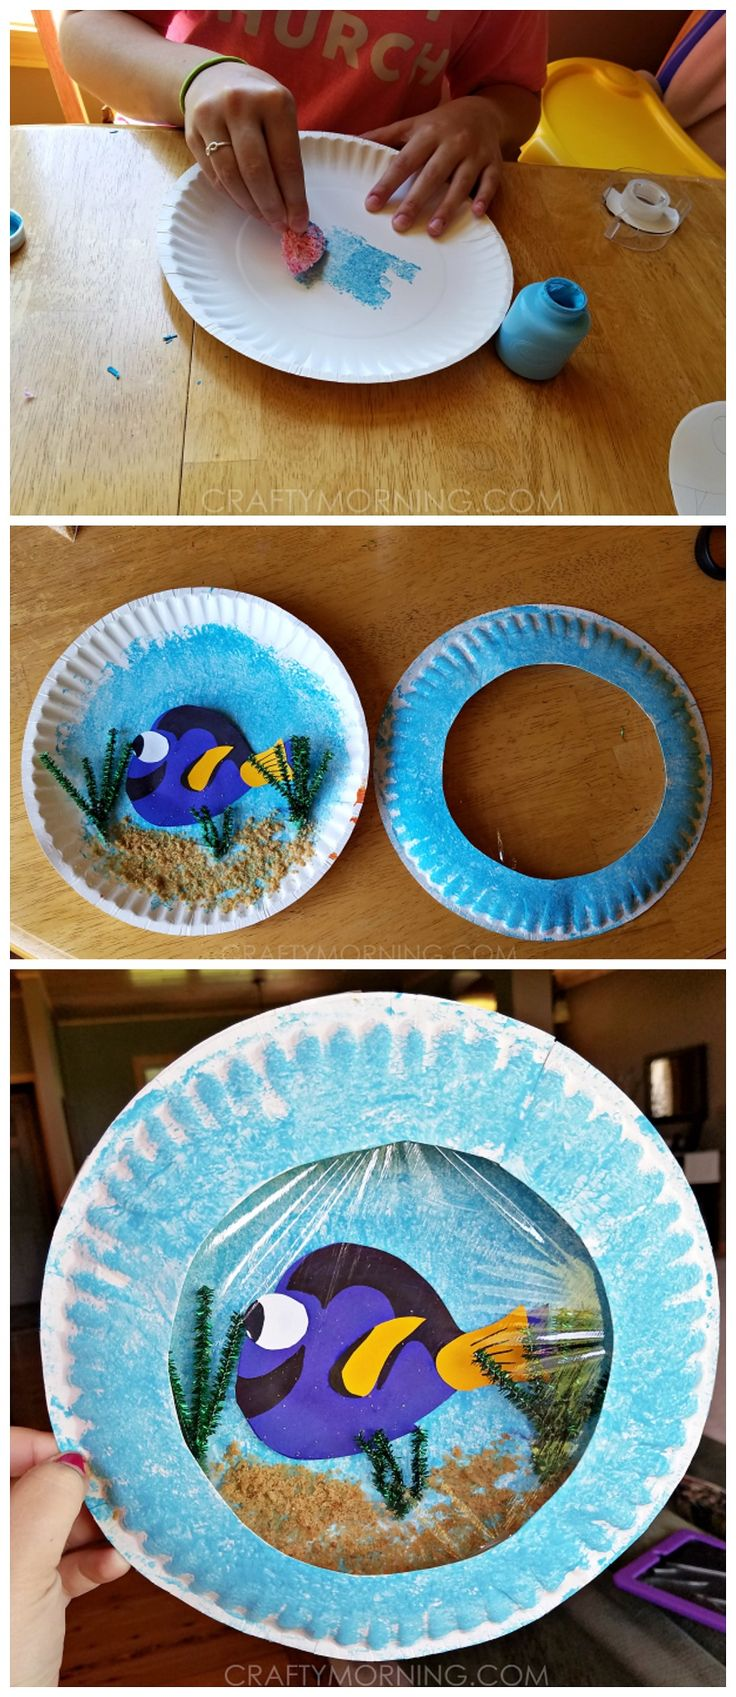 17 best ideas about crafts for kids on pinterest kid for Finding dory crafts for preschoolers